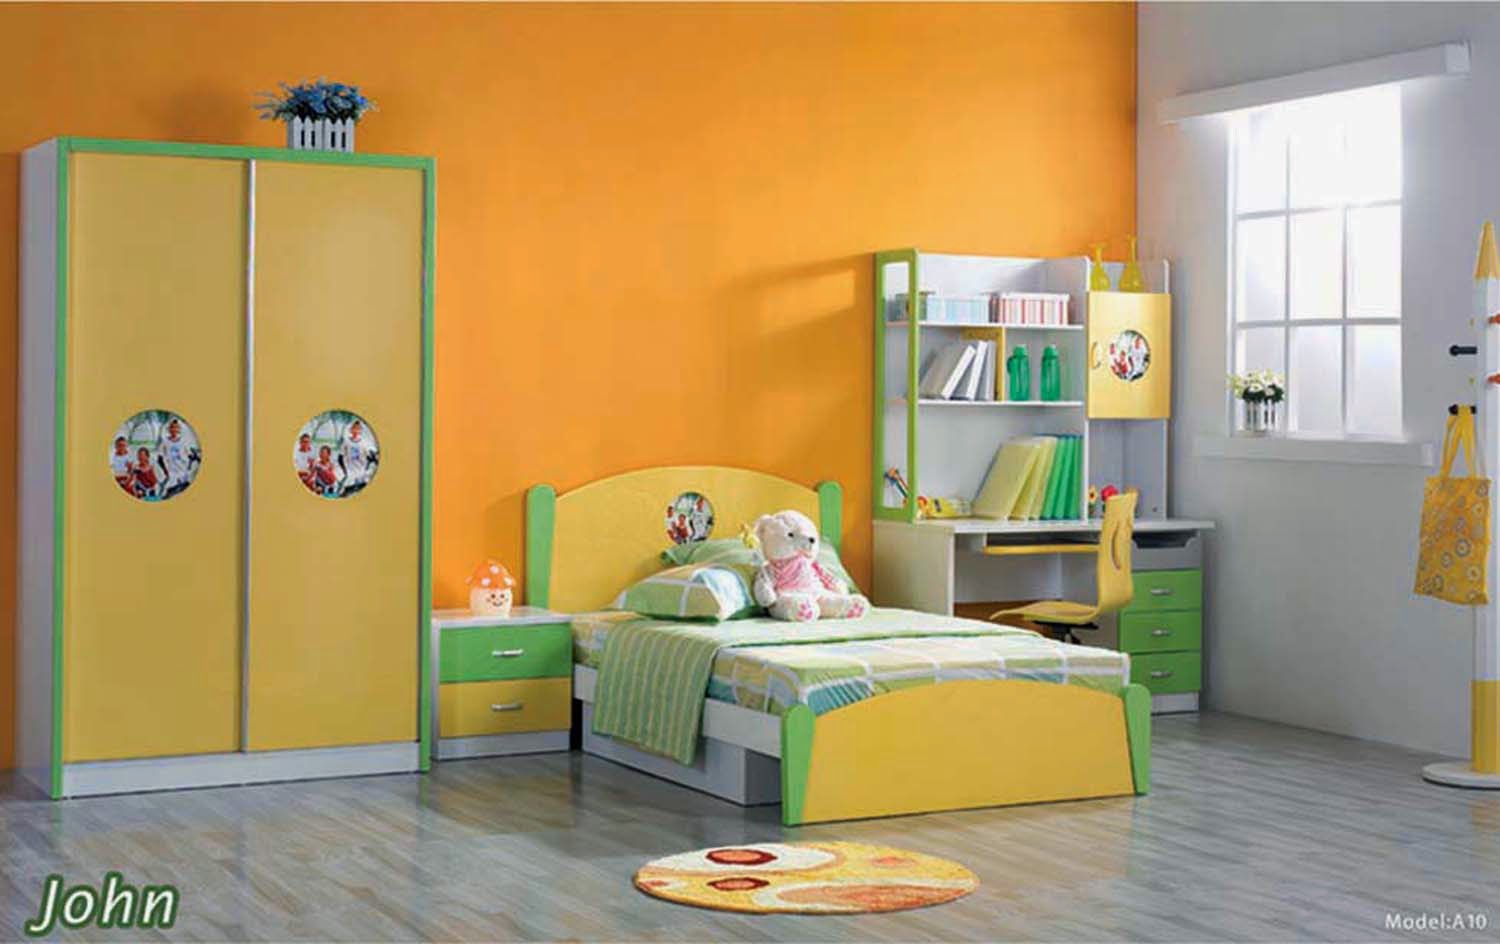 Bedroom Decorating Ideas Vastu nine vastu ways to improve children room -vastu bulletin | vastu